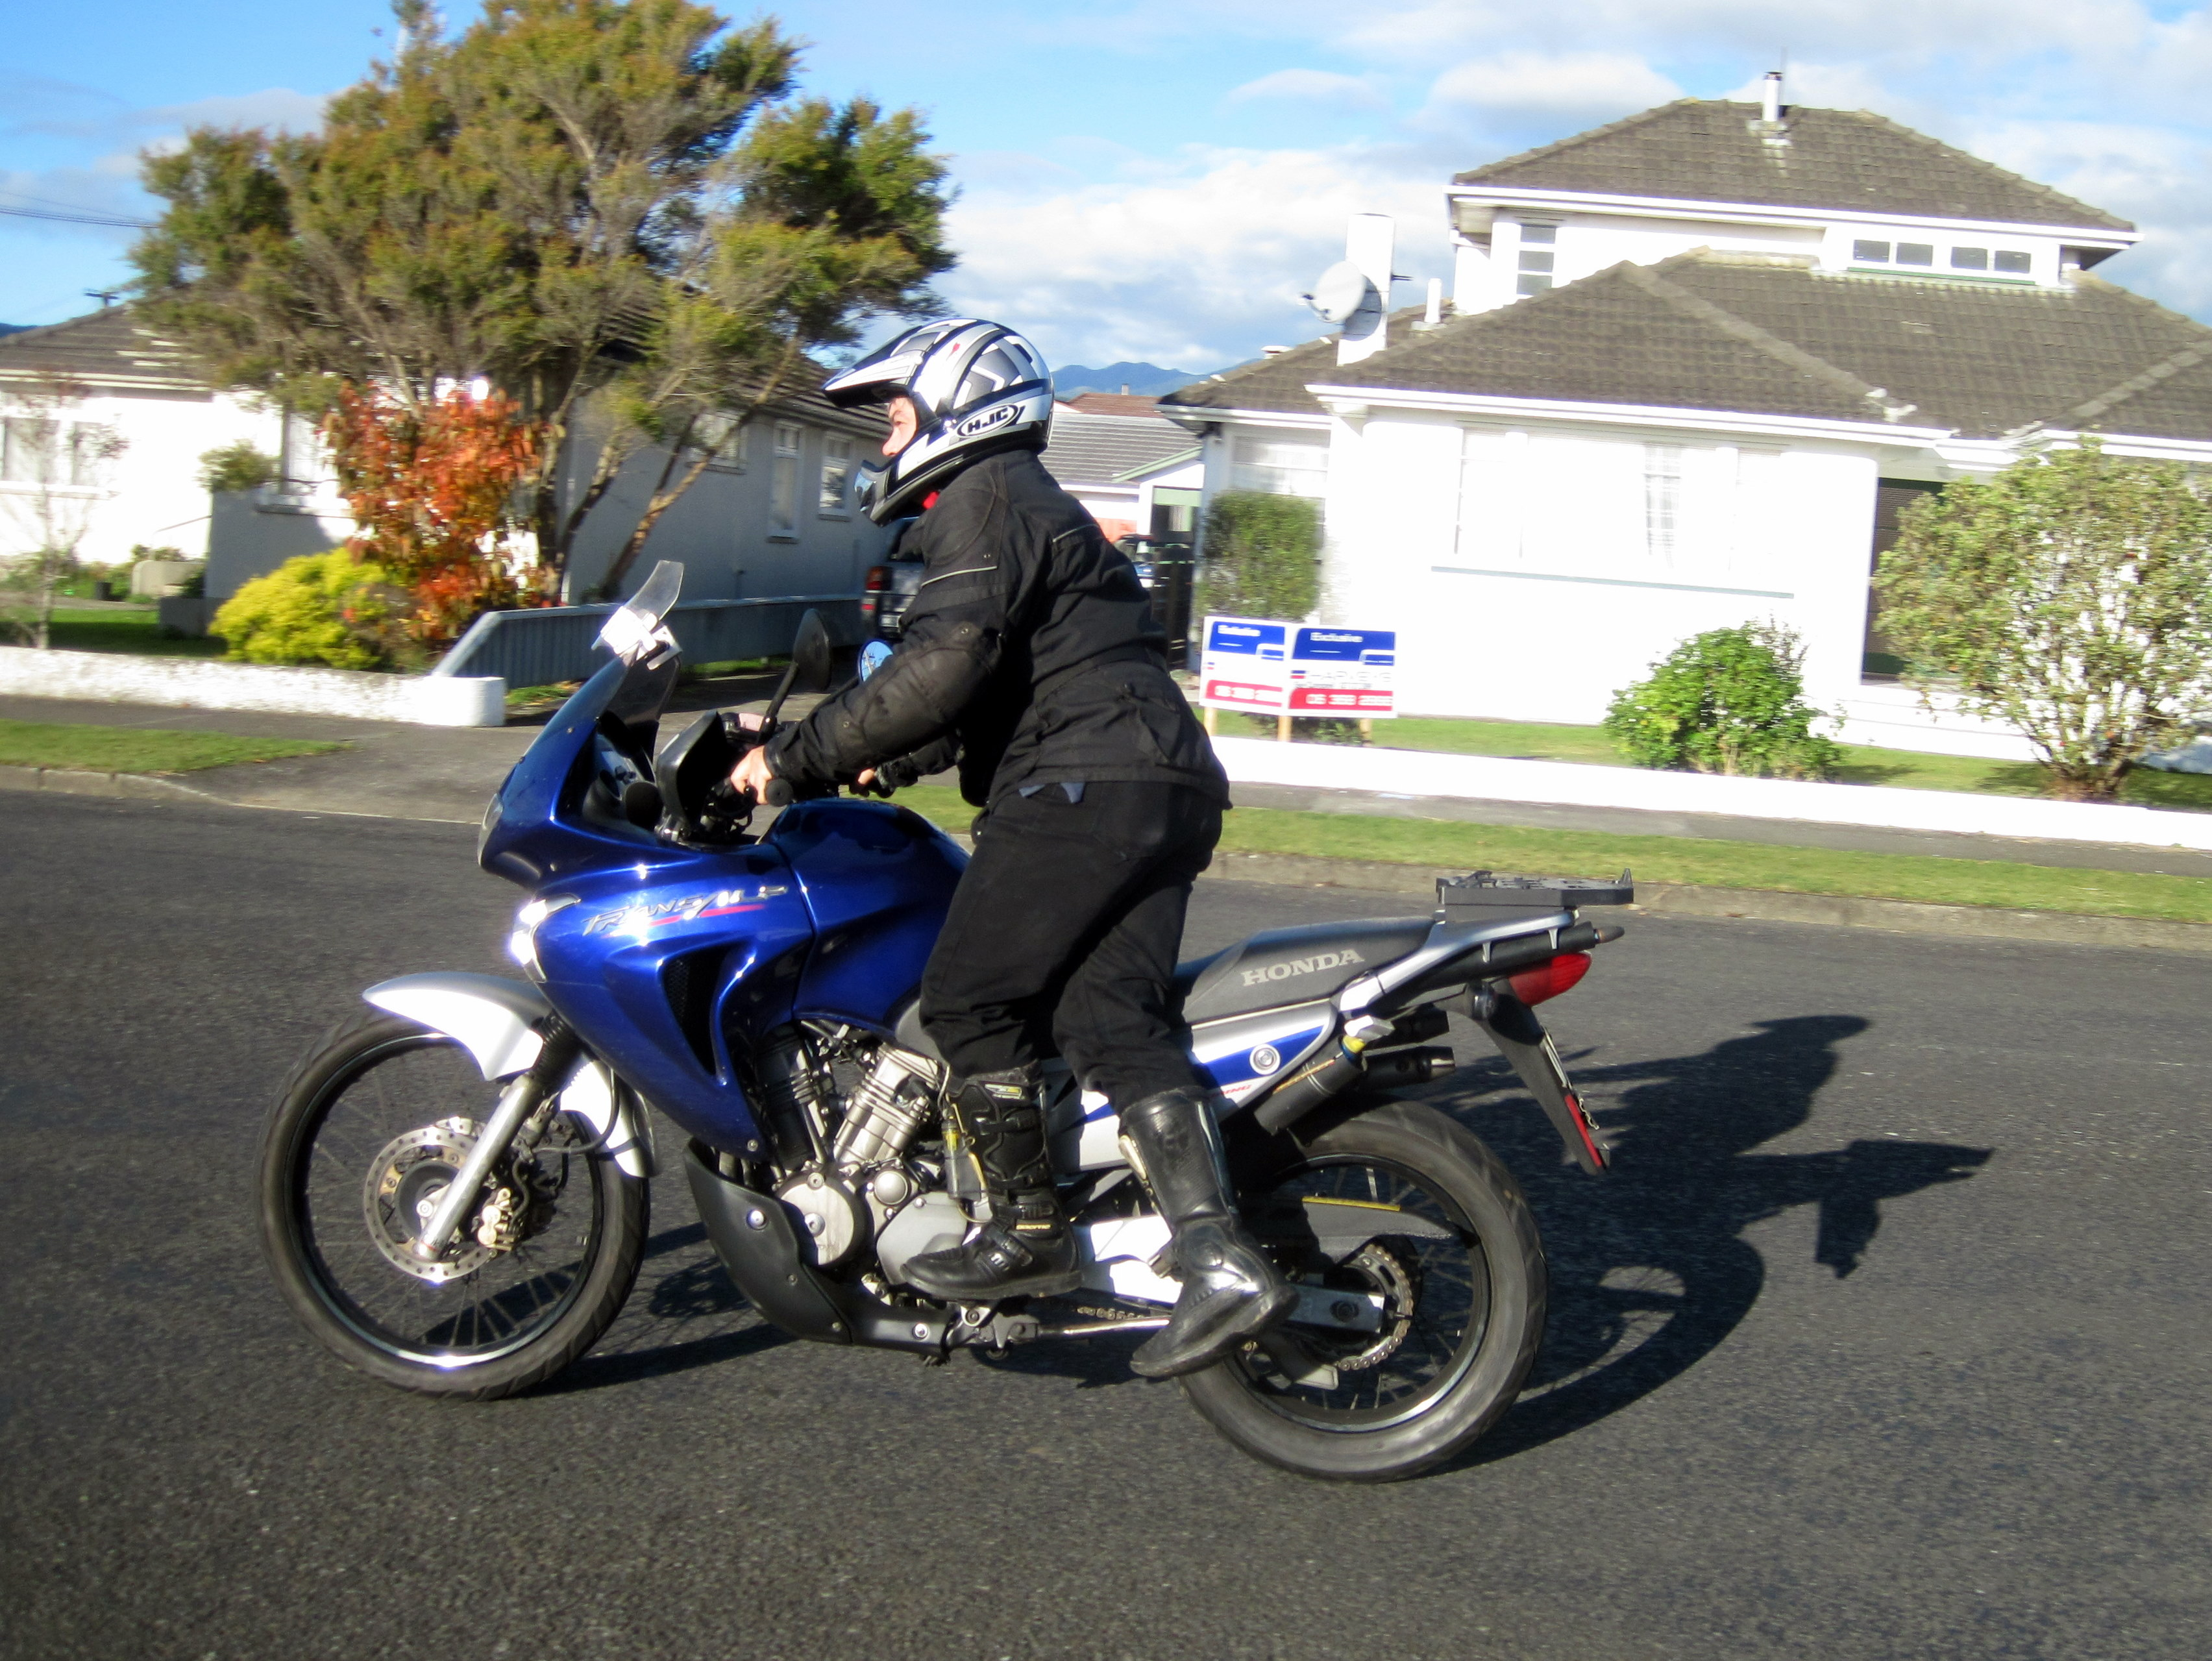 How to ride a tall motorbike if you are short.